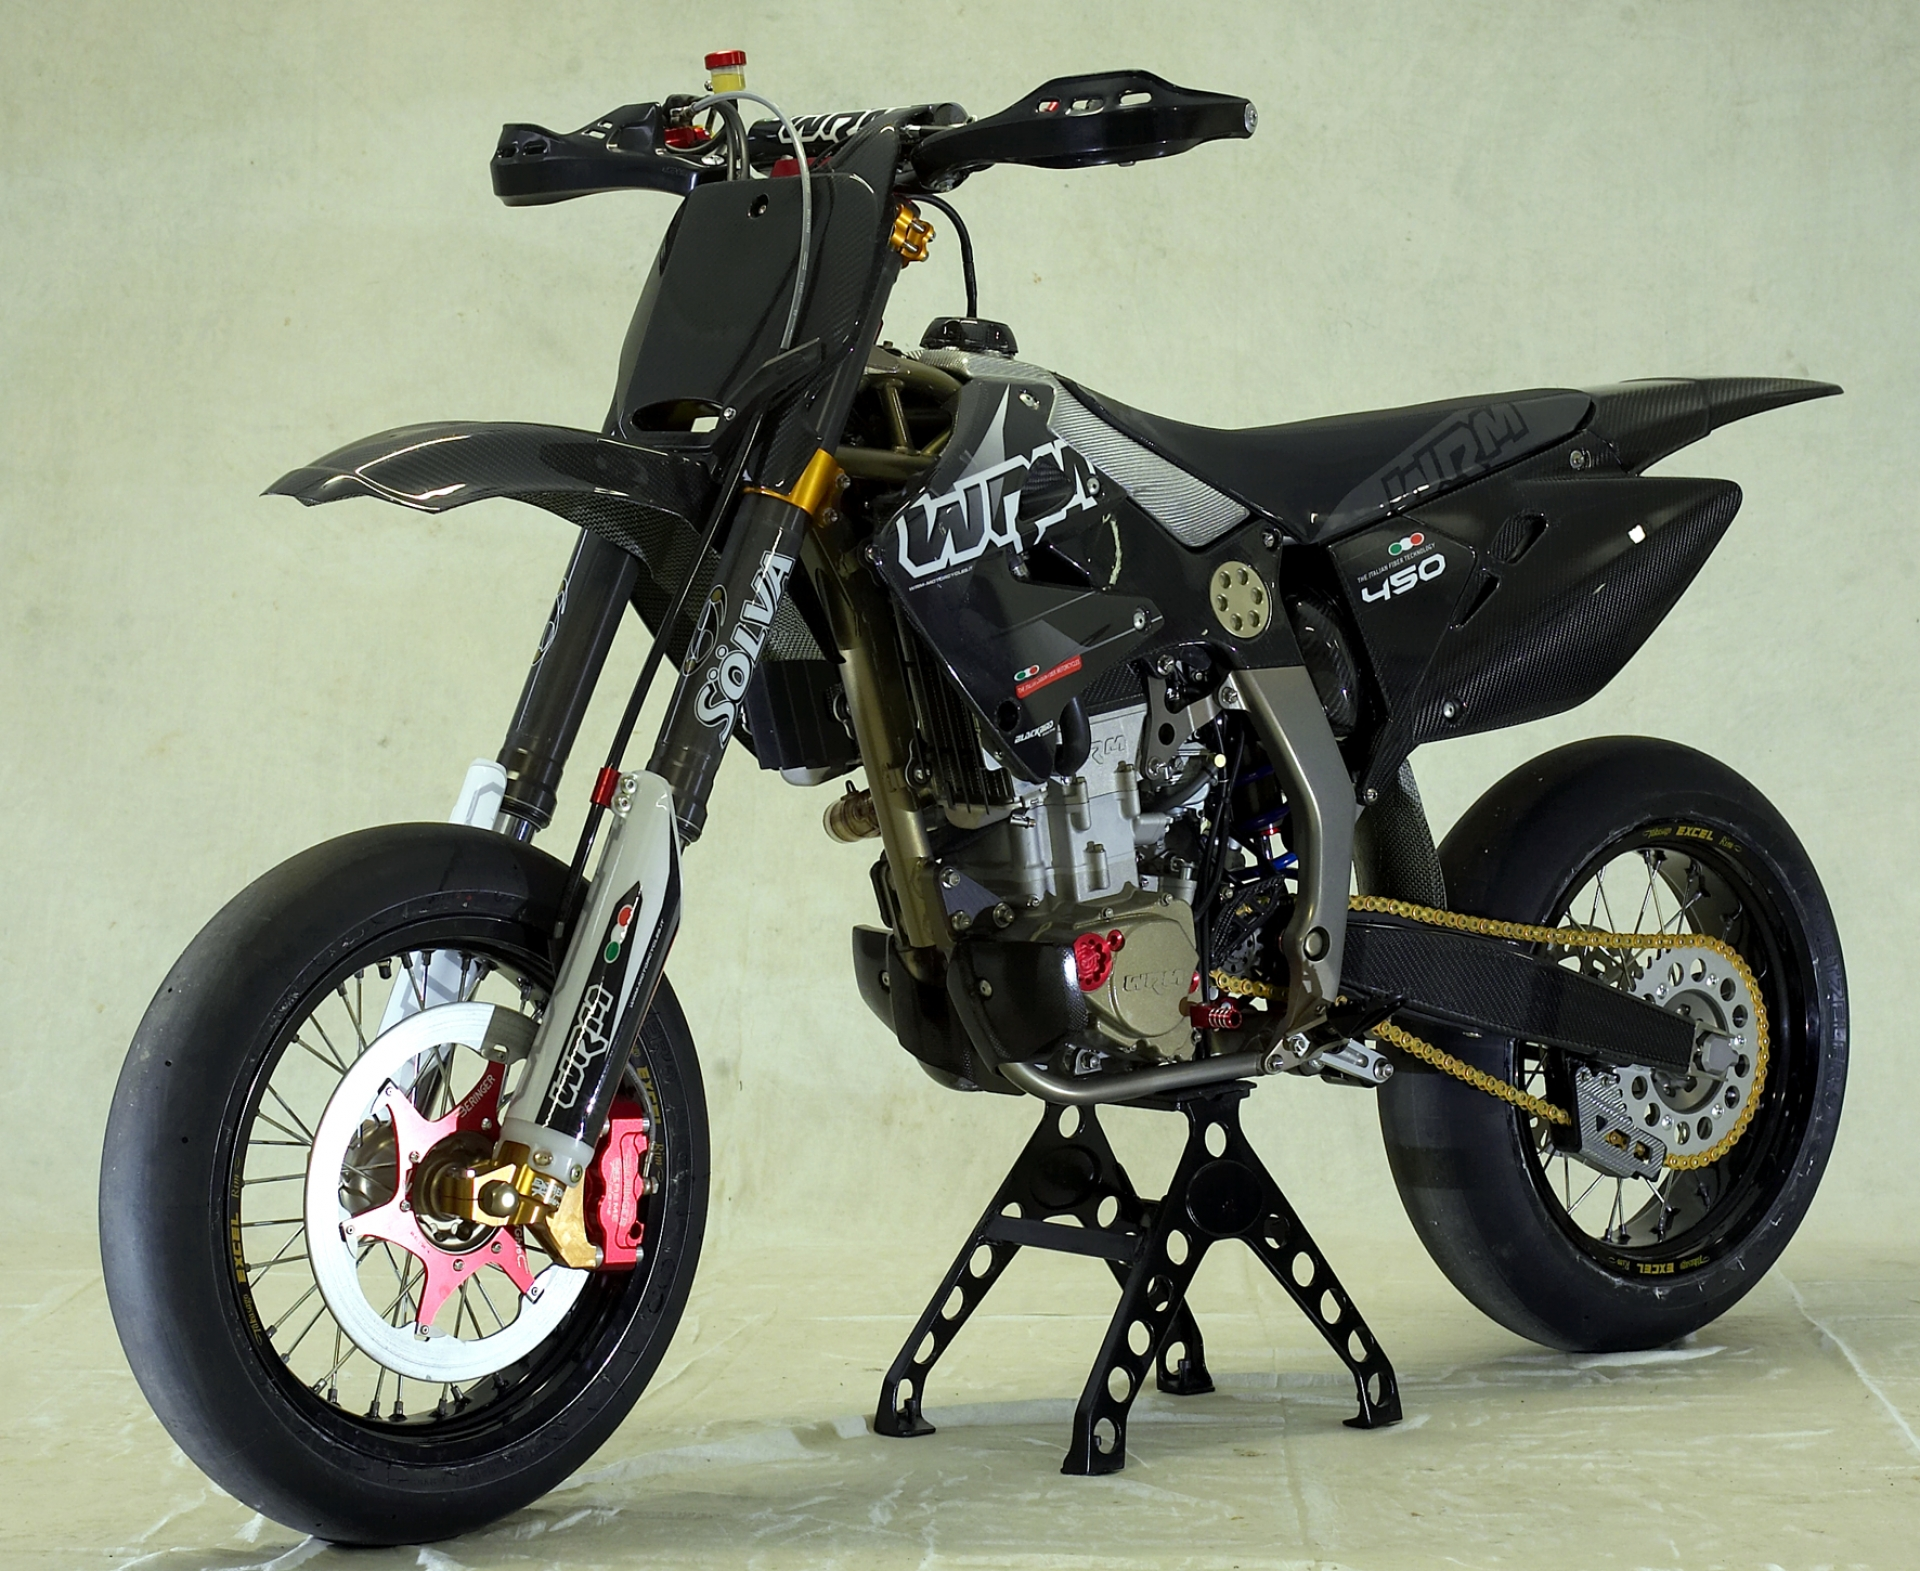 Highland 950 V2 Outback Supermoto 2008 images #169804